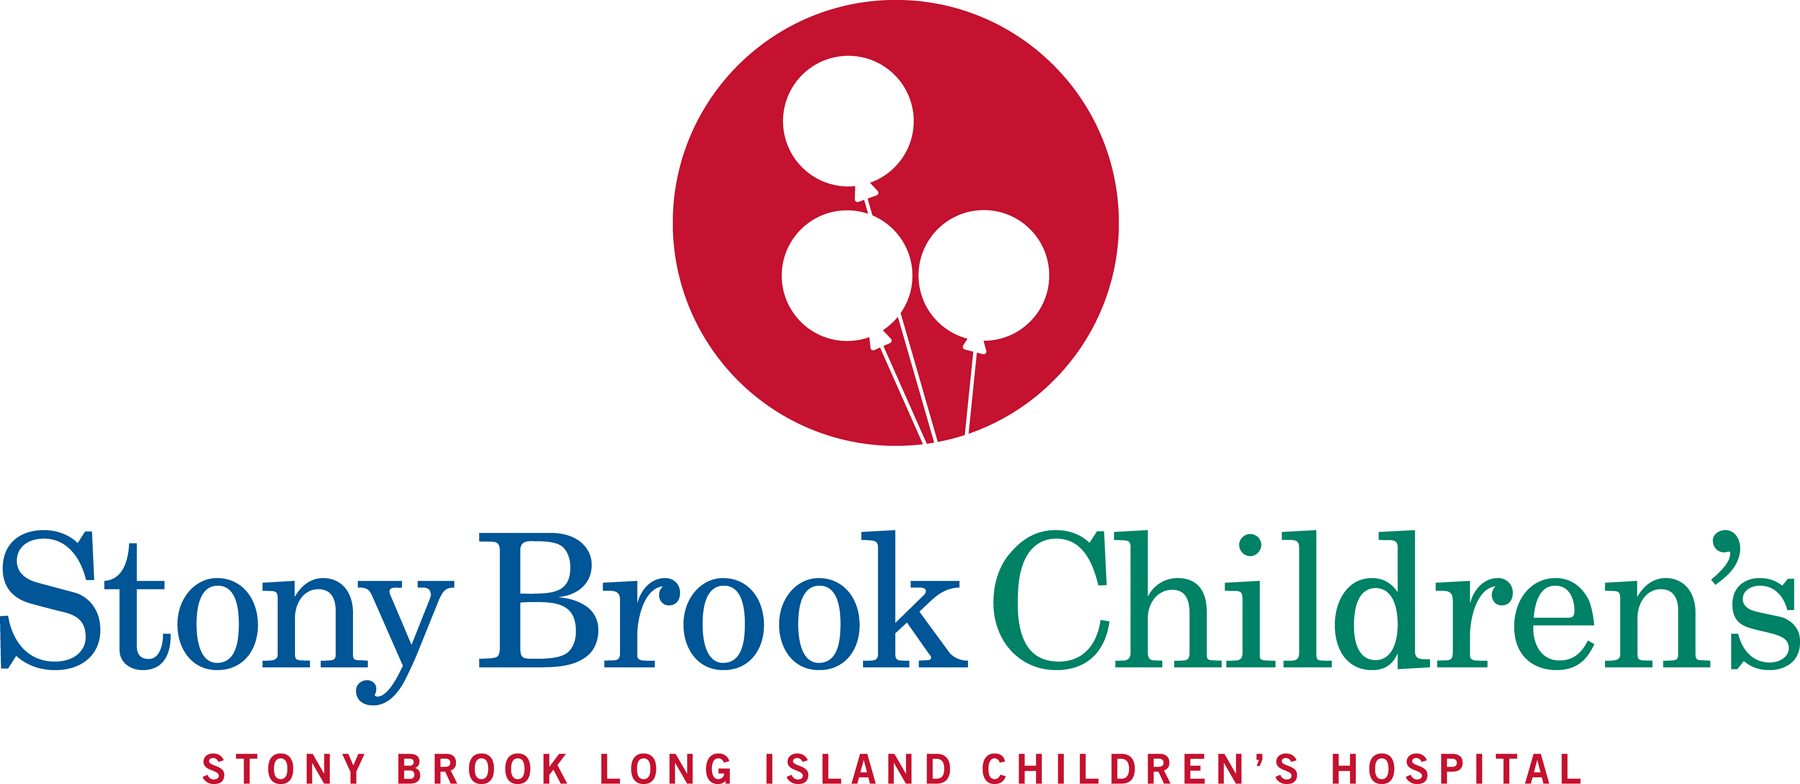 stony brook childrens